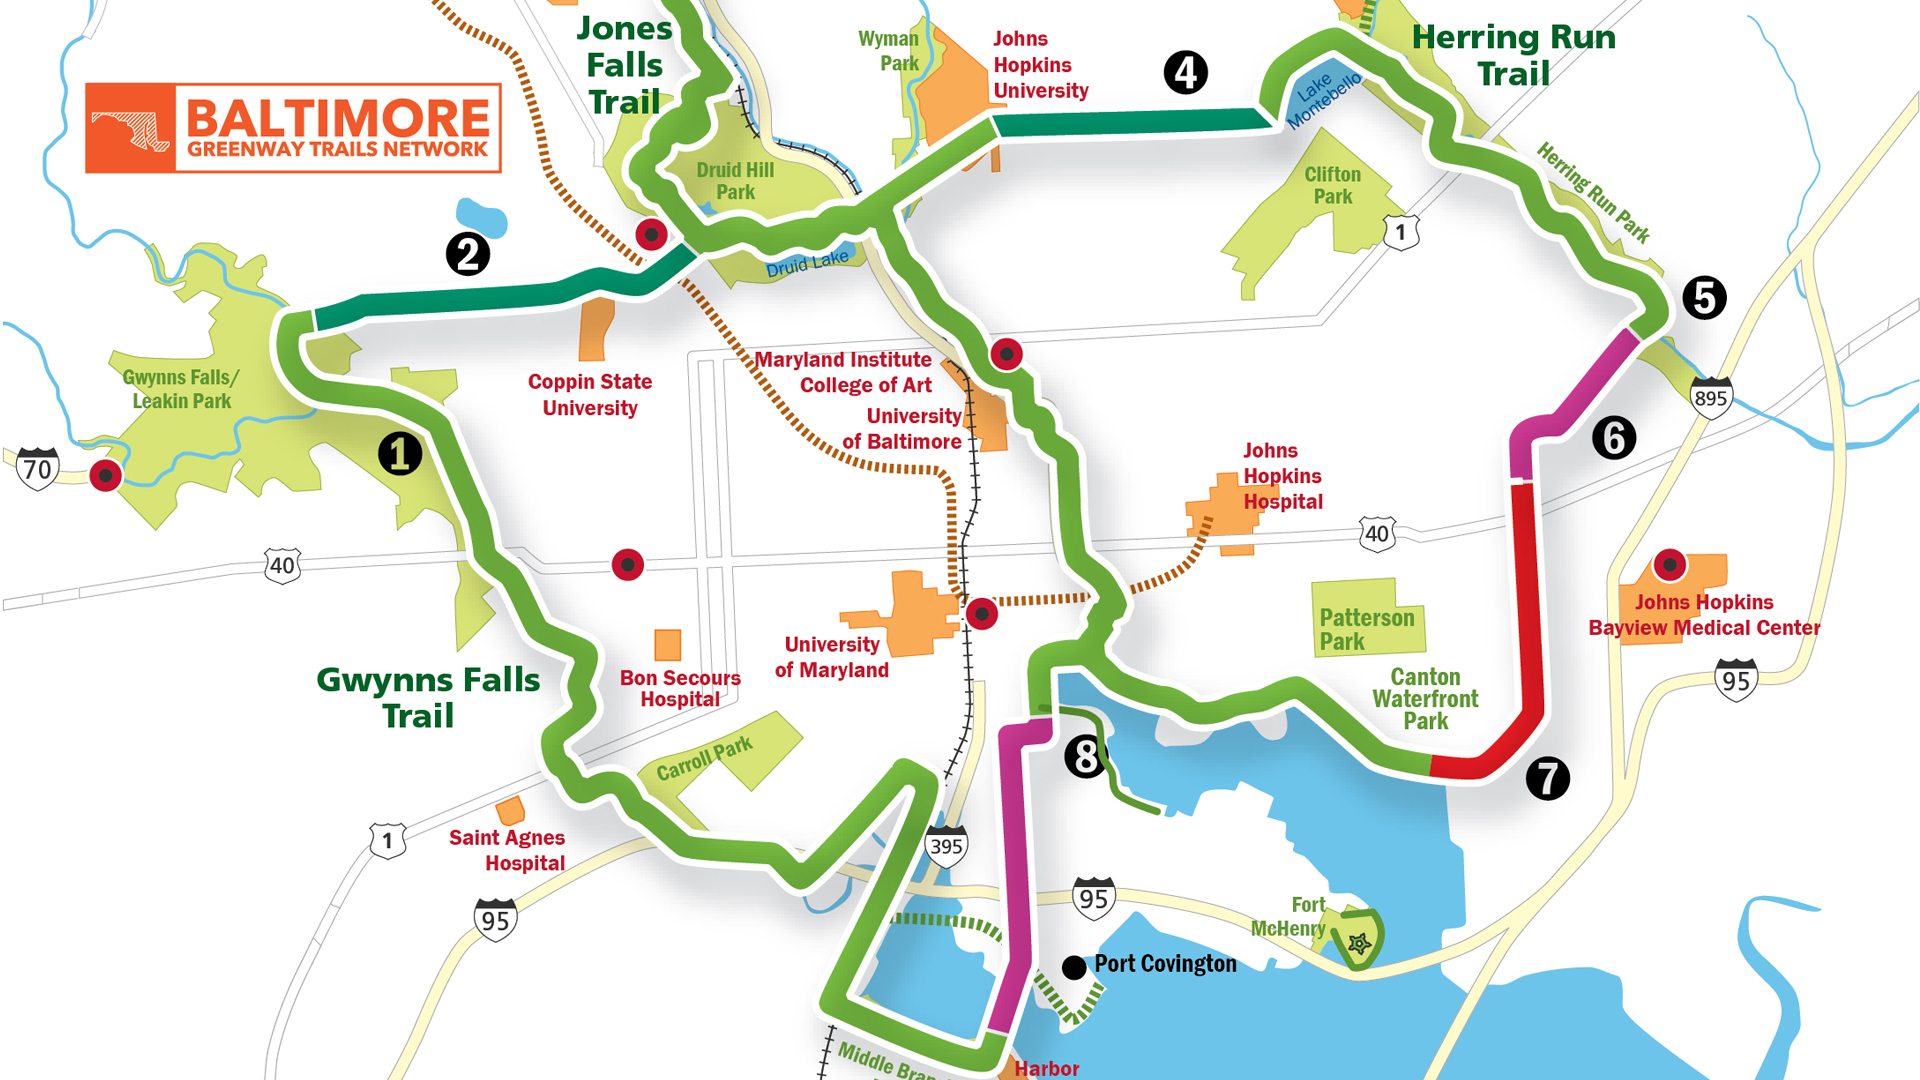 Baltimore Greenway Trails Network Map